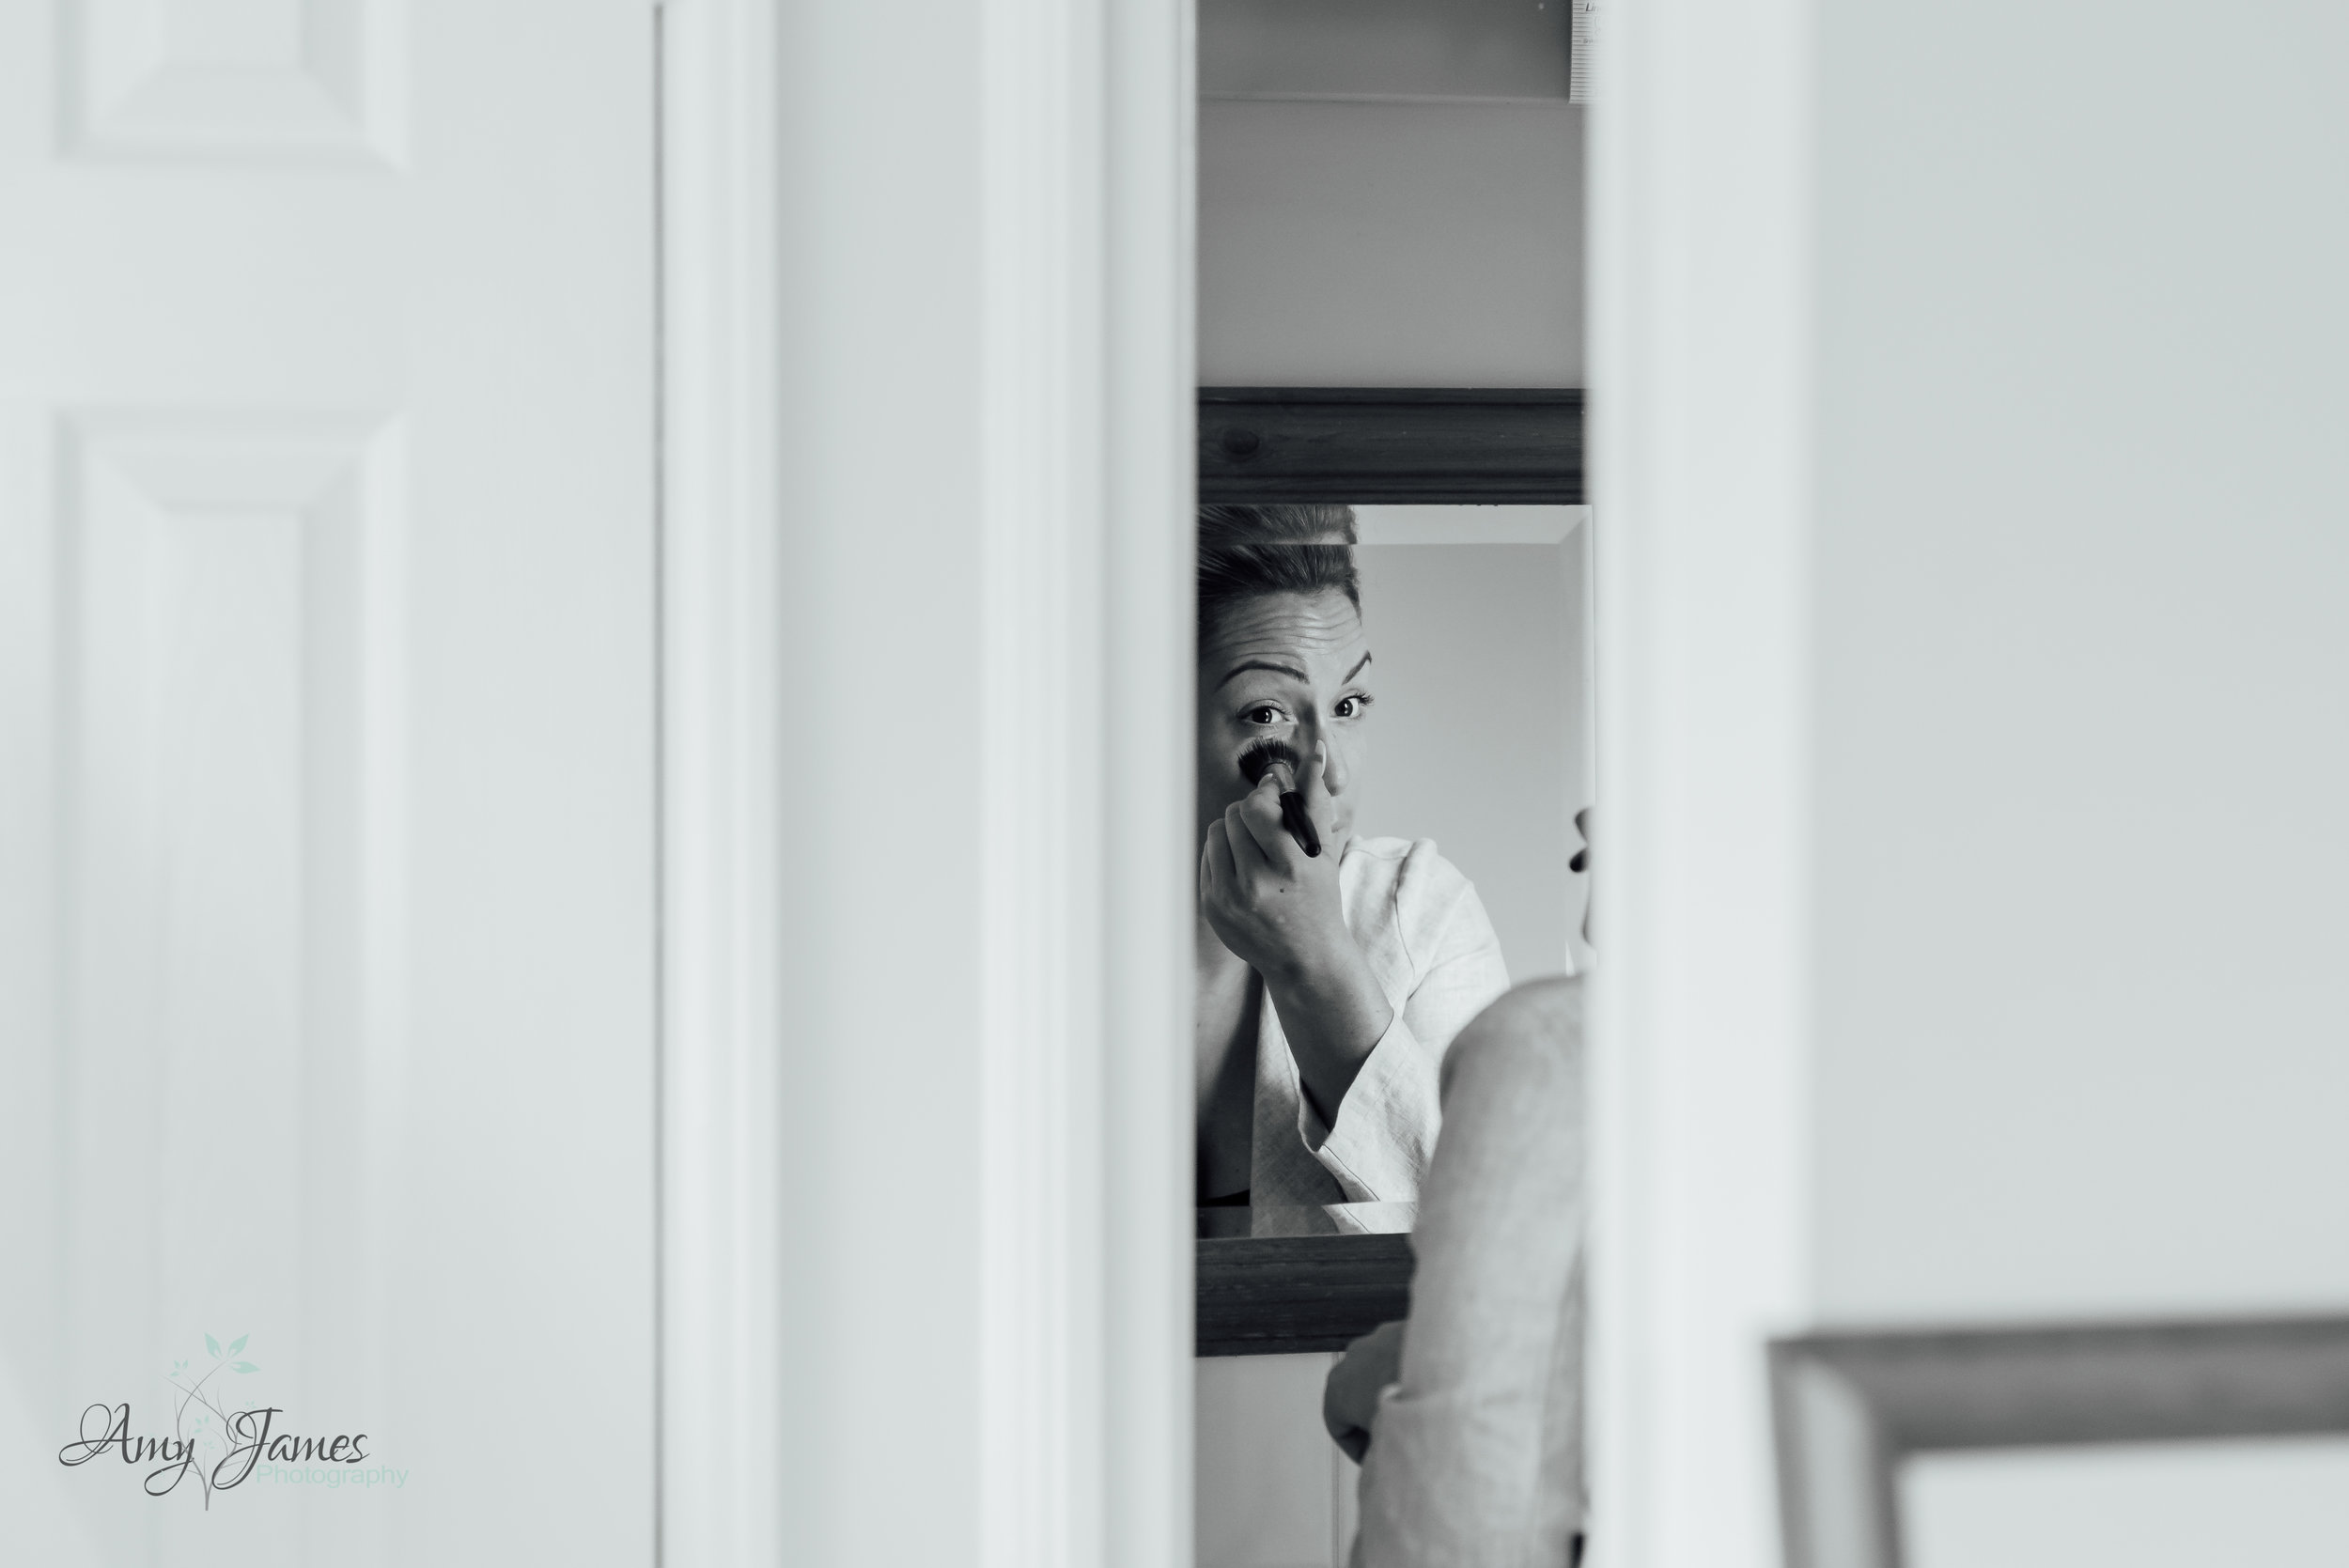 Bride getting ready - Black and white bridal prep photograph - Documentary wedding photography - Amy James Photography - Wedding Photographer Fleet Hampshire